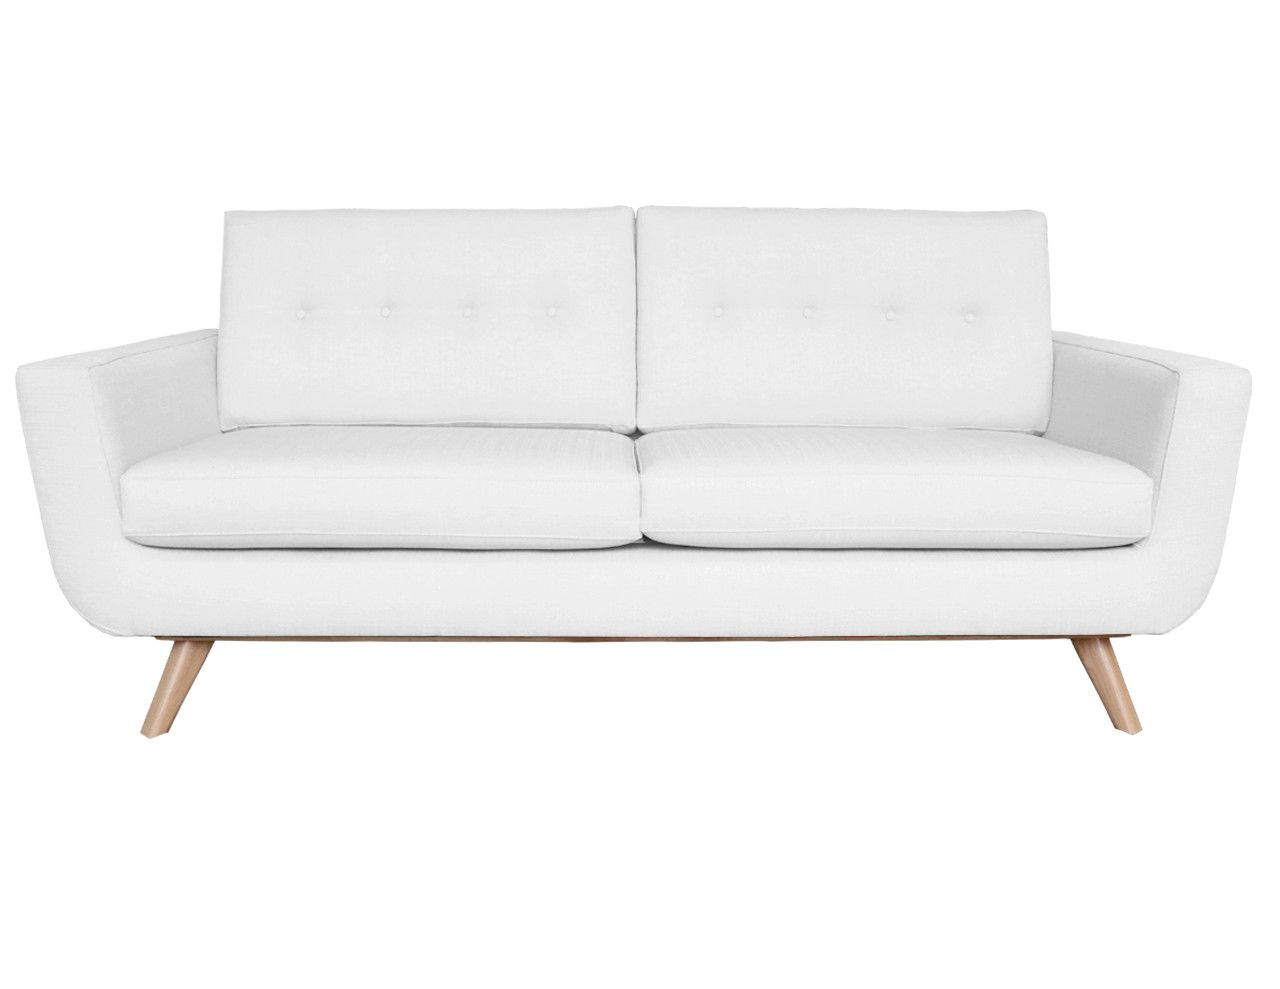 Callie Sofa | Products Pertaining To Callie Sofa Chairs (Image 12 of 25)